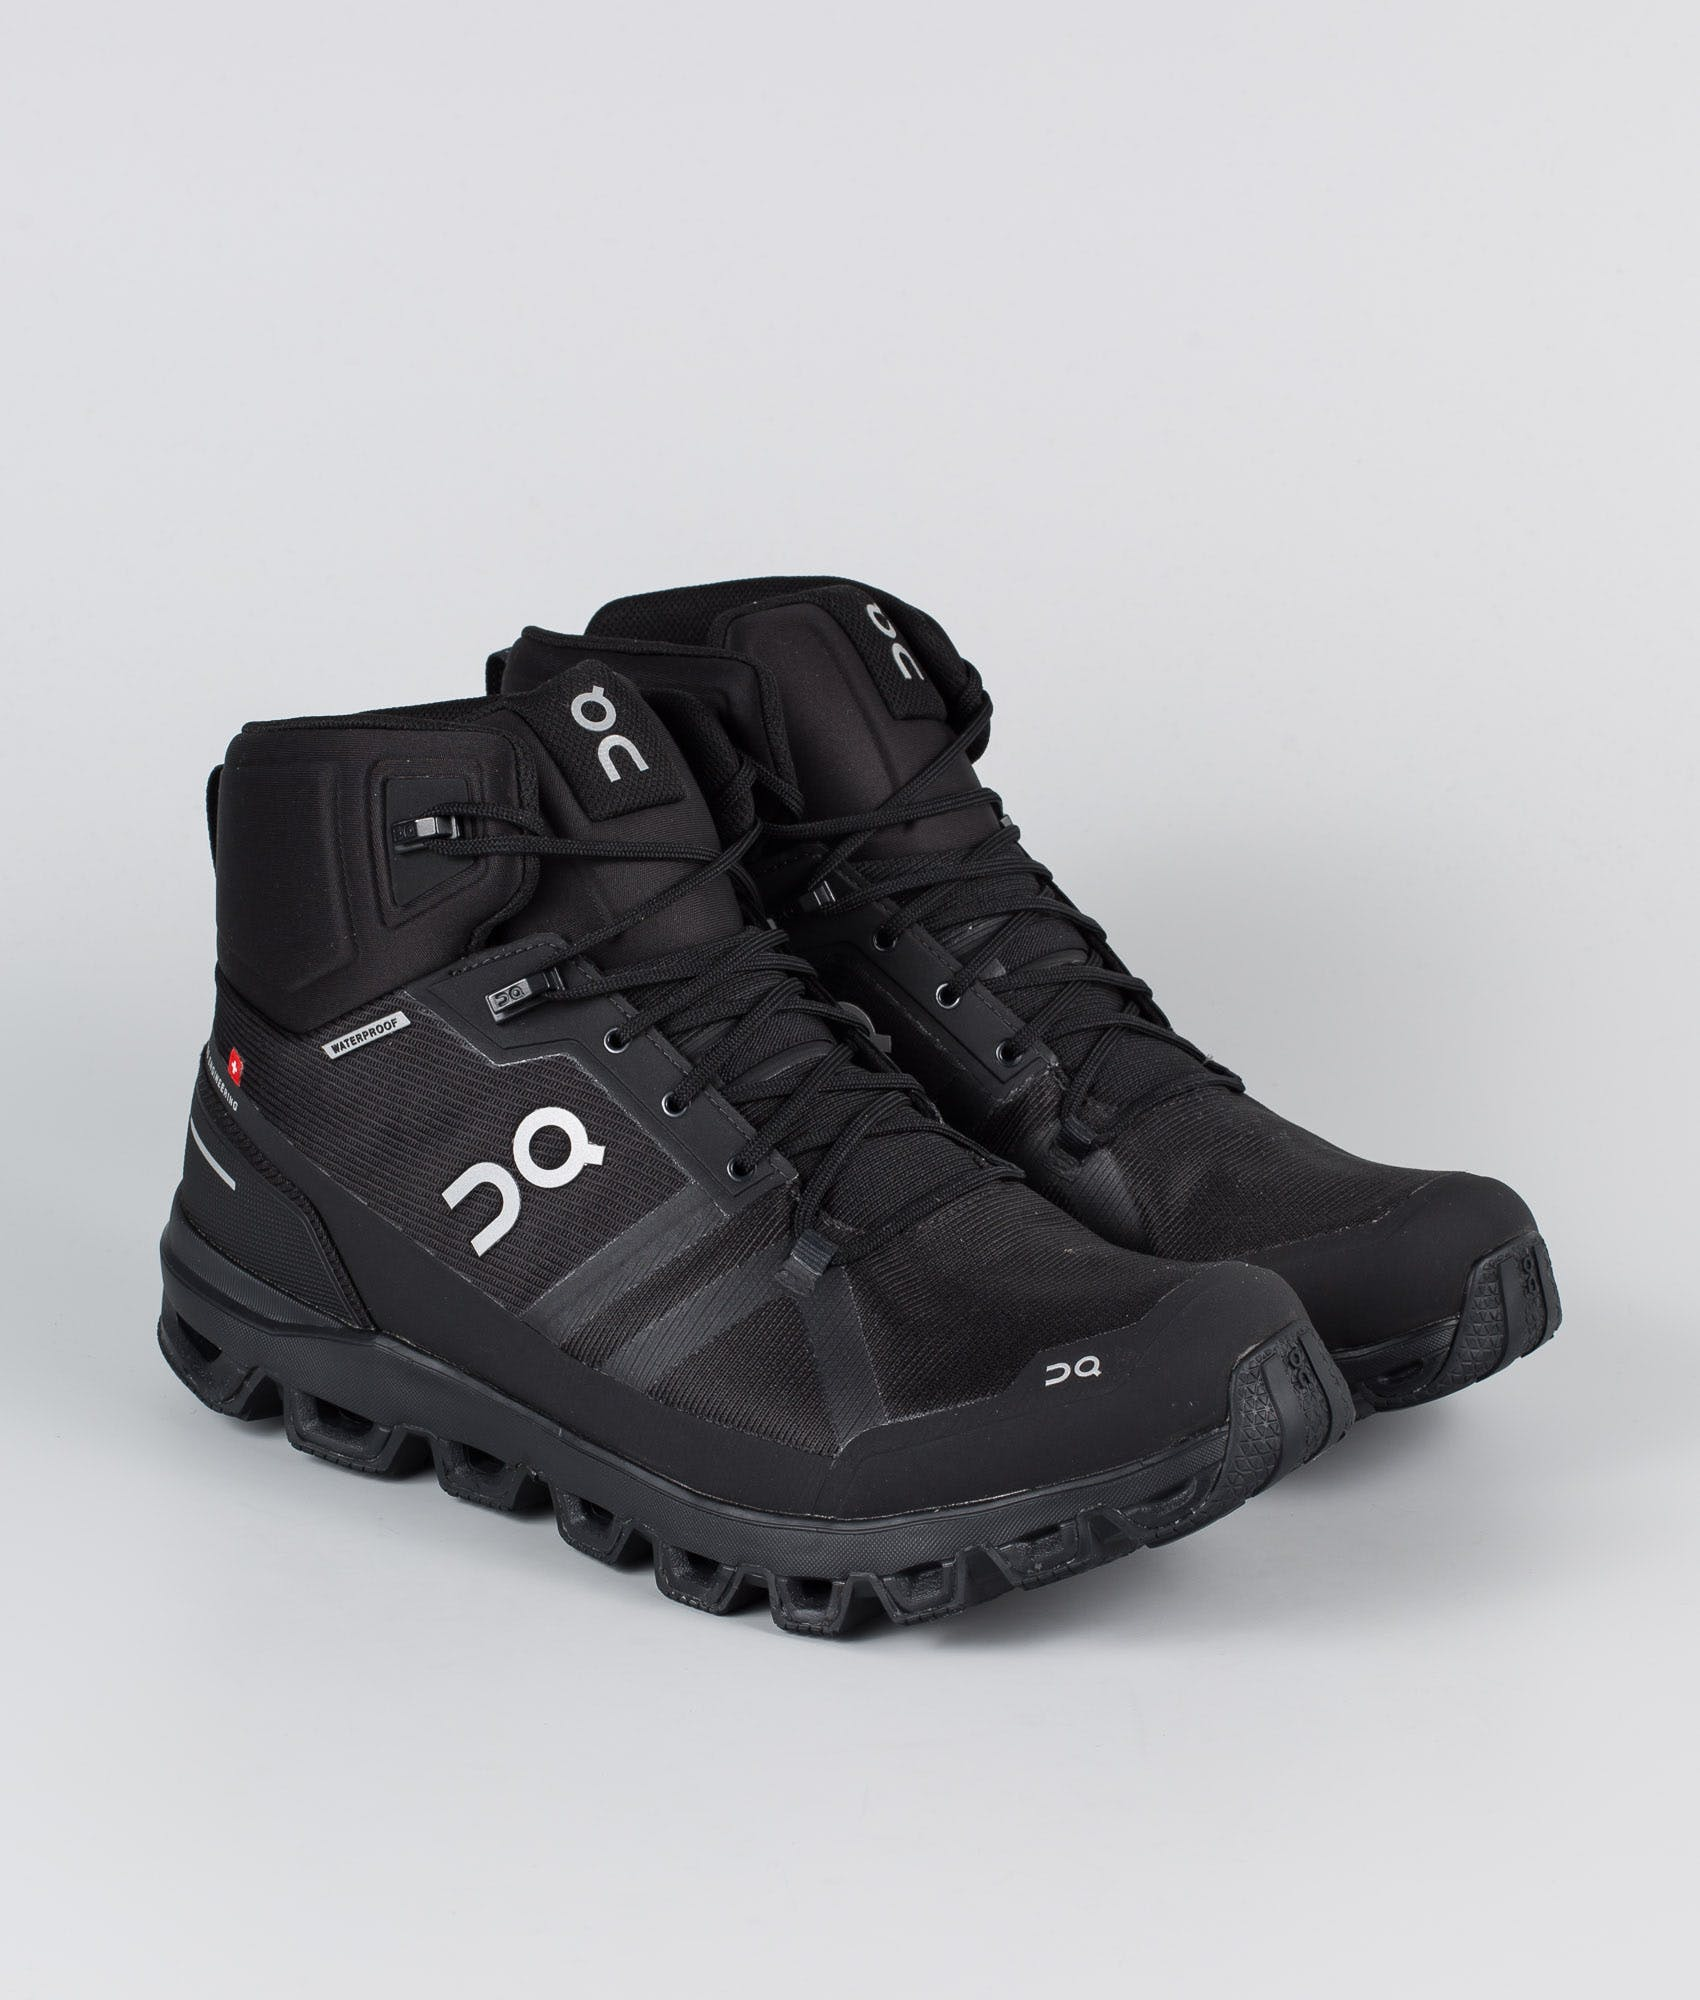 onshoes hiking boot